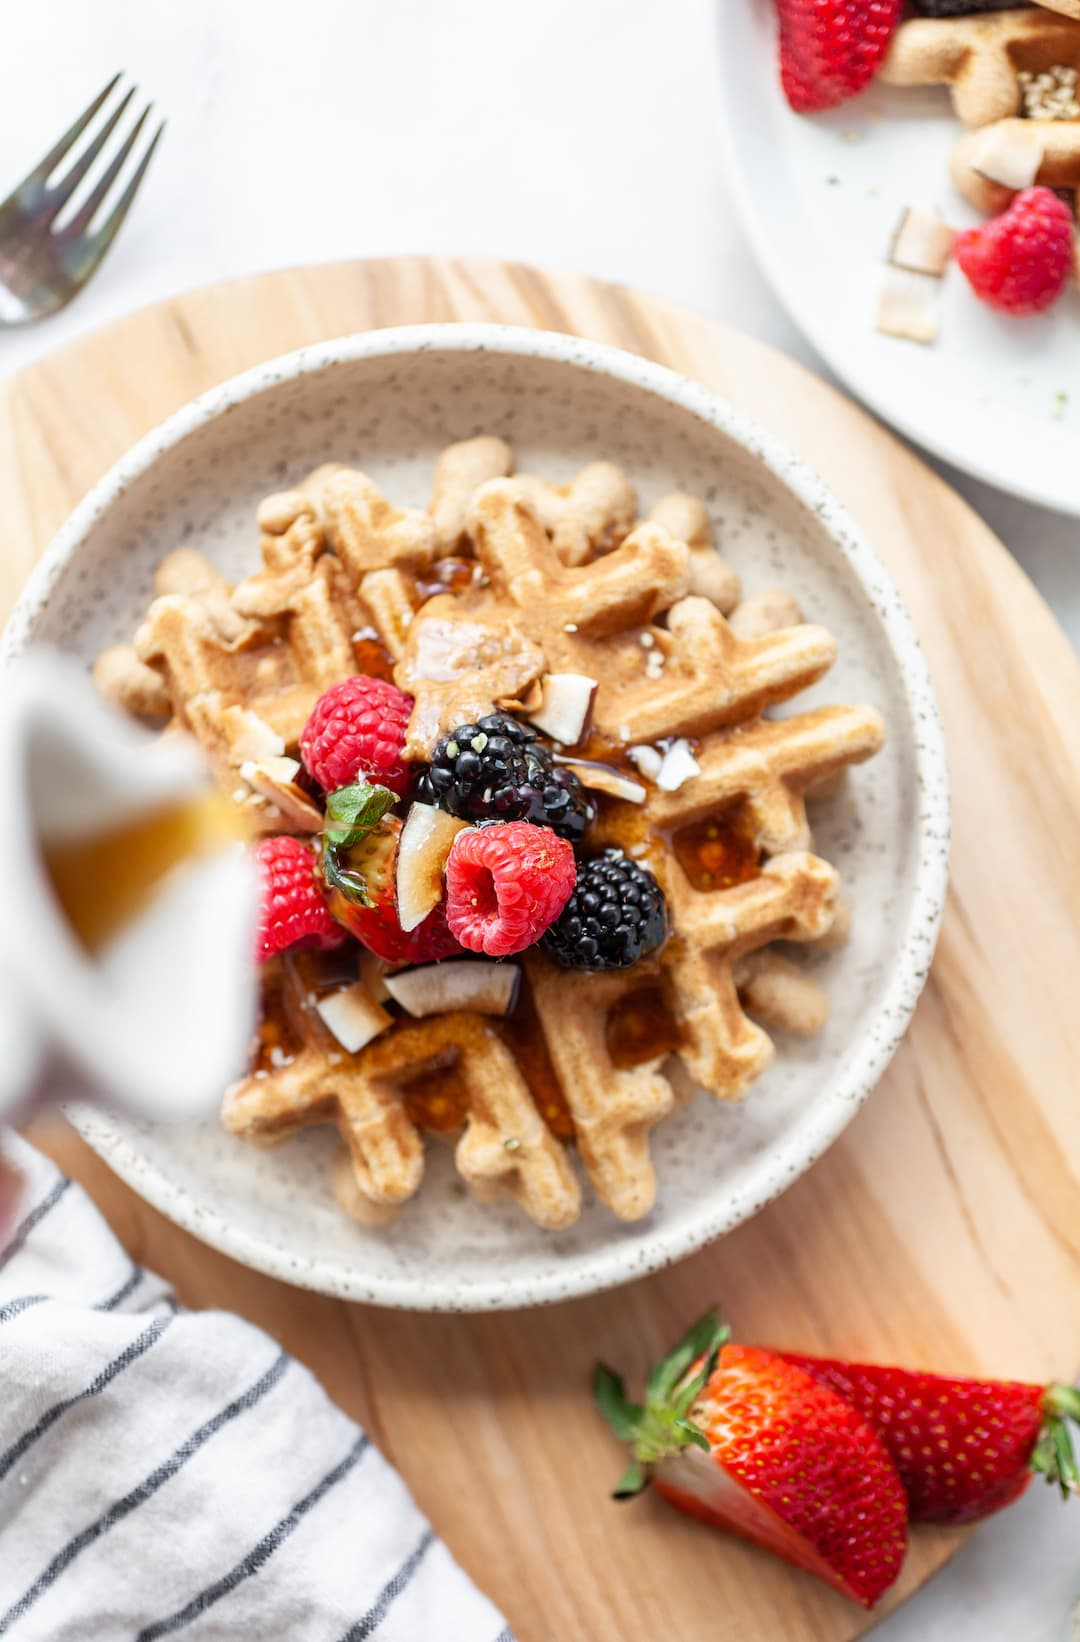 Easy Coconut Flour Waffles on a plate topped with fresh berries and syrup being poured on top